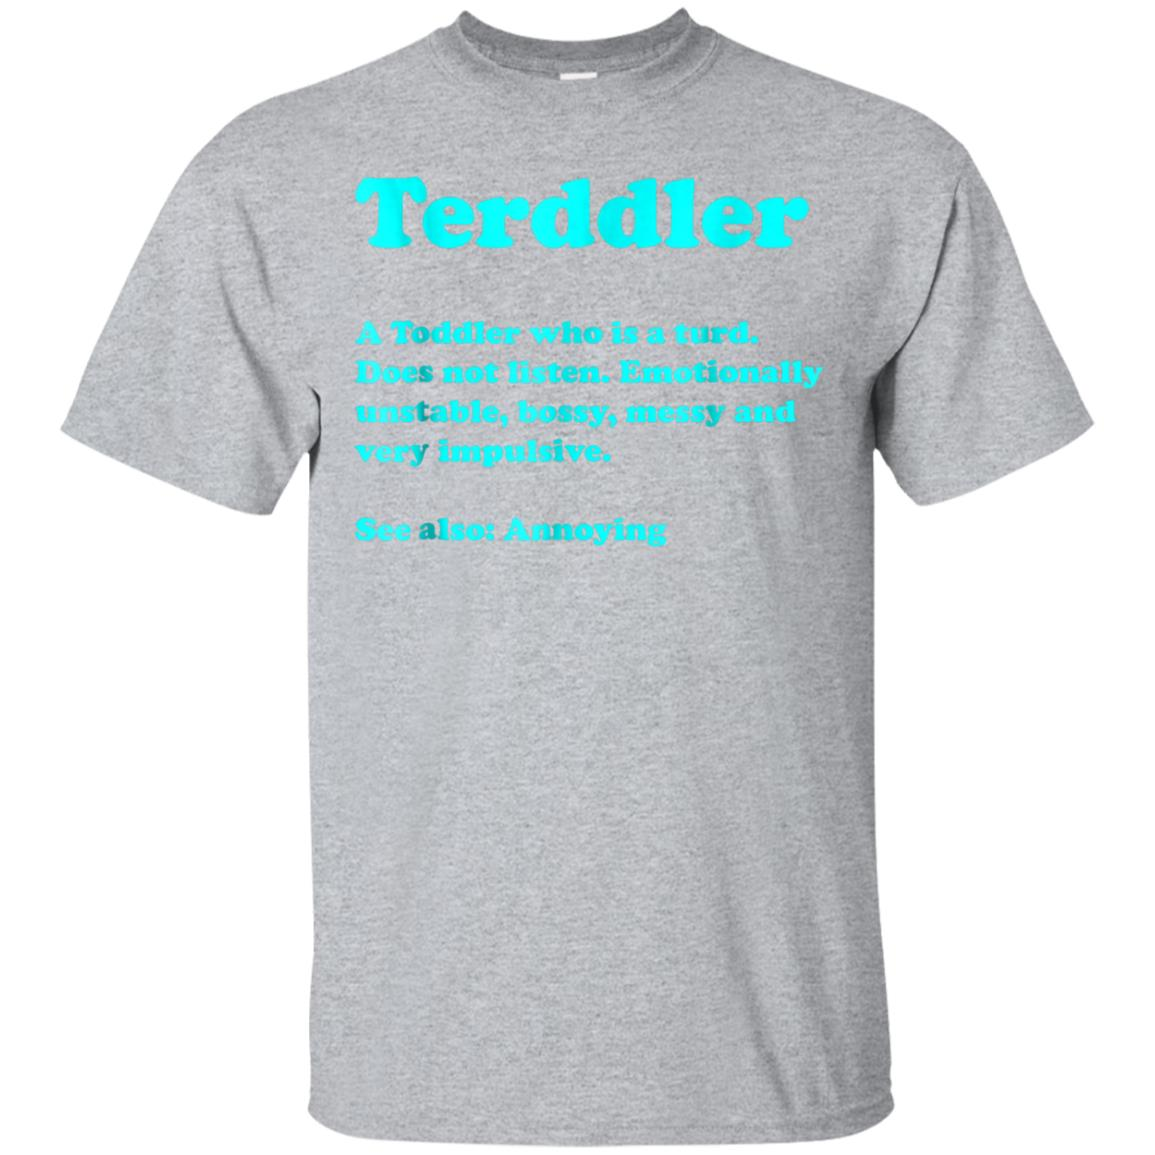 Terddler Toddler Shirt 99promocode